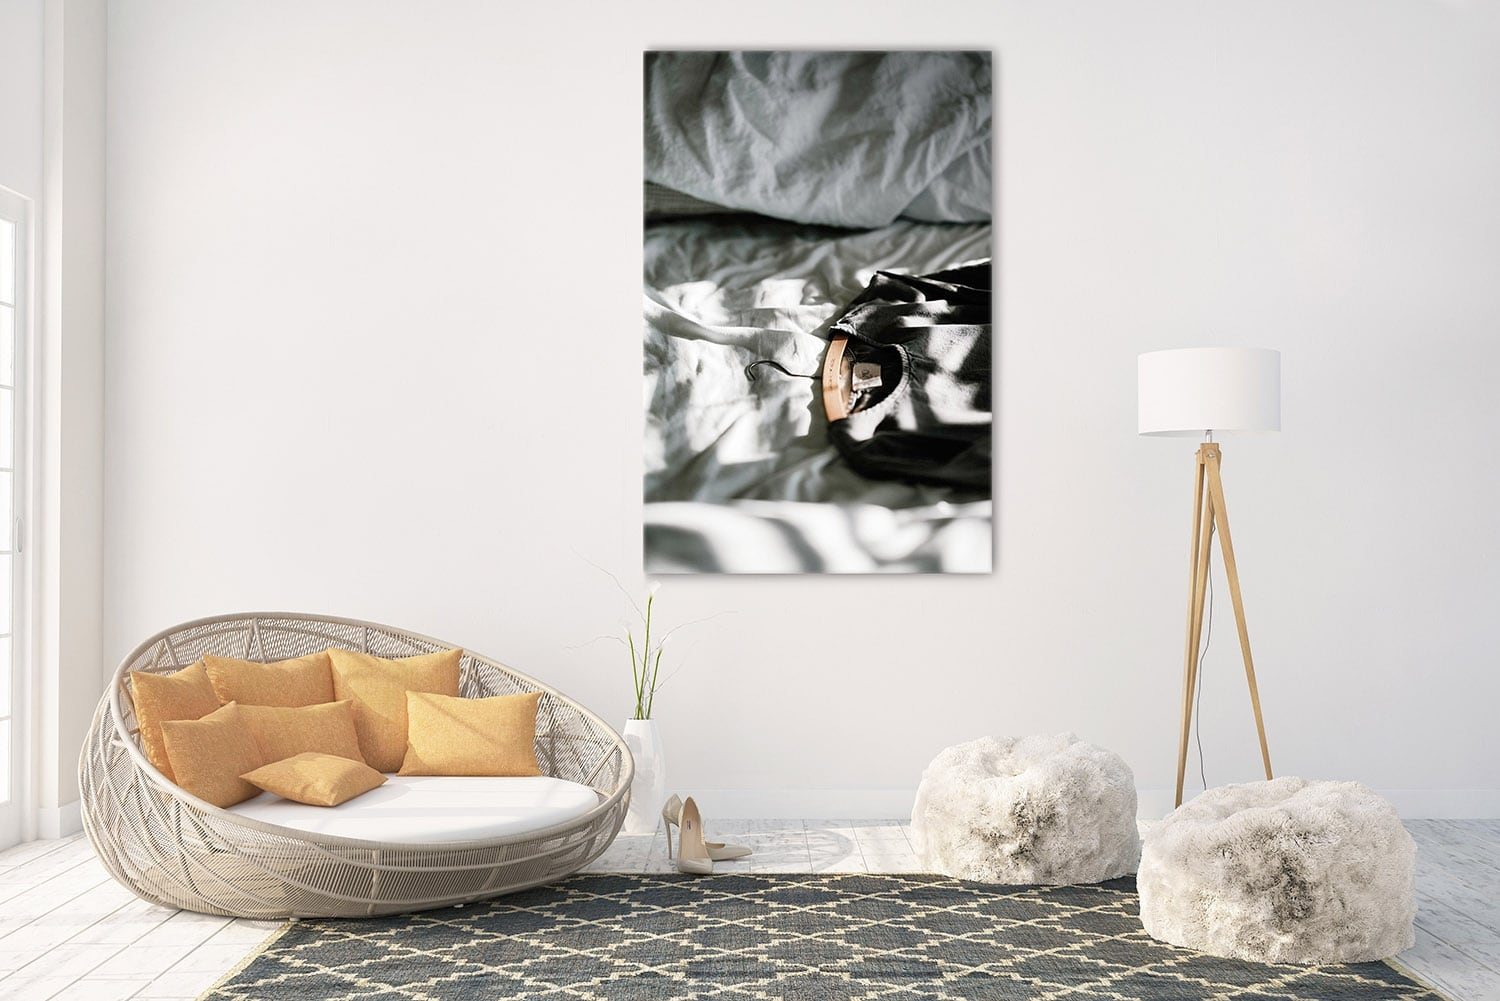 Aluminium art photo of a bed with clothes to create a modern wall decoration